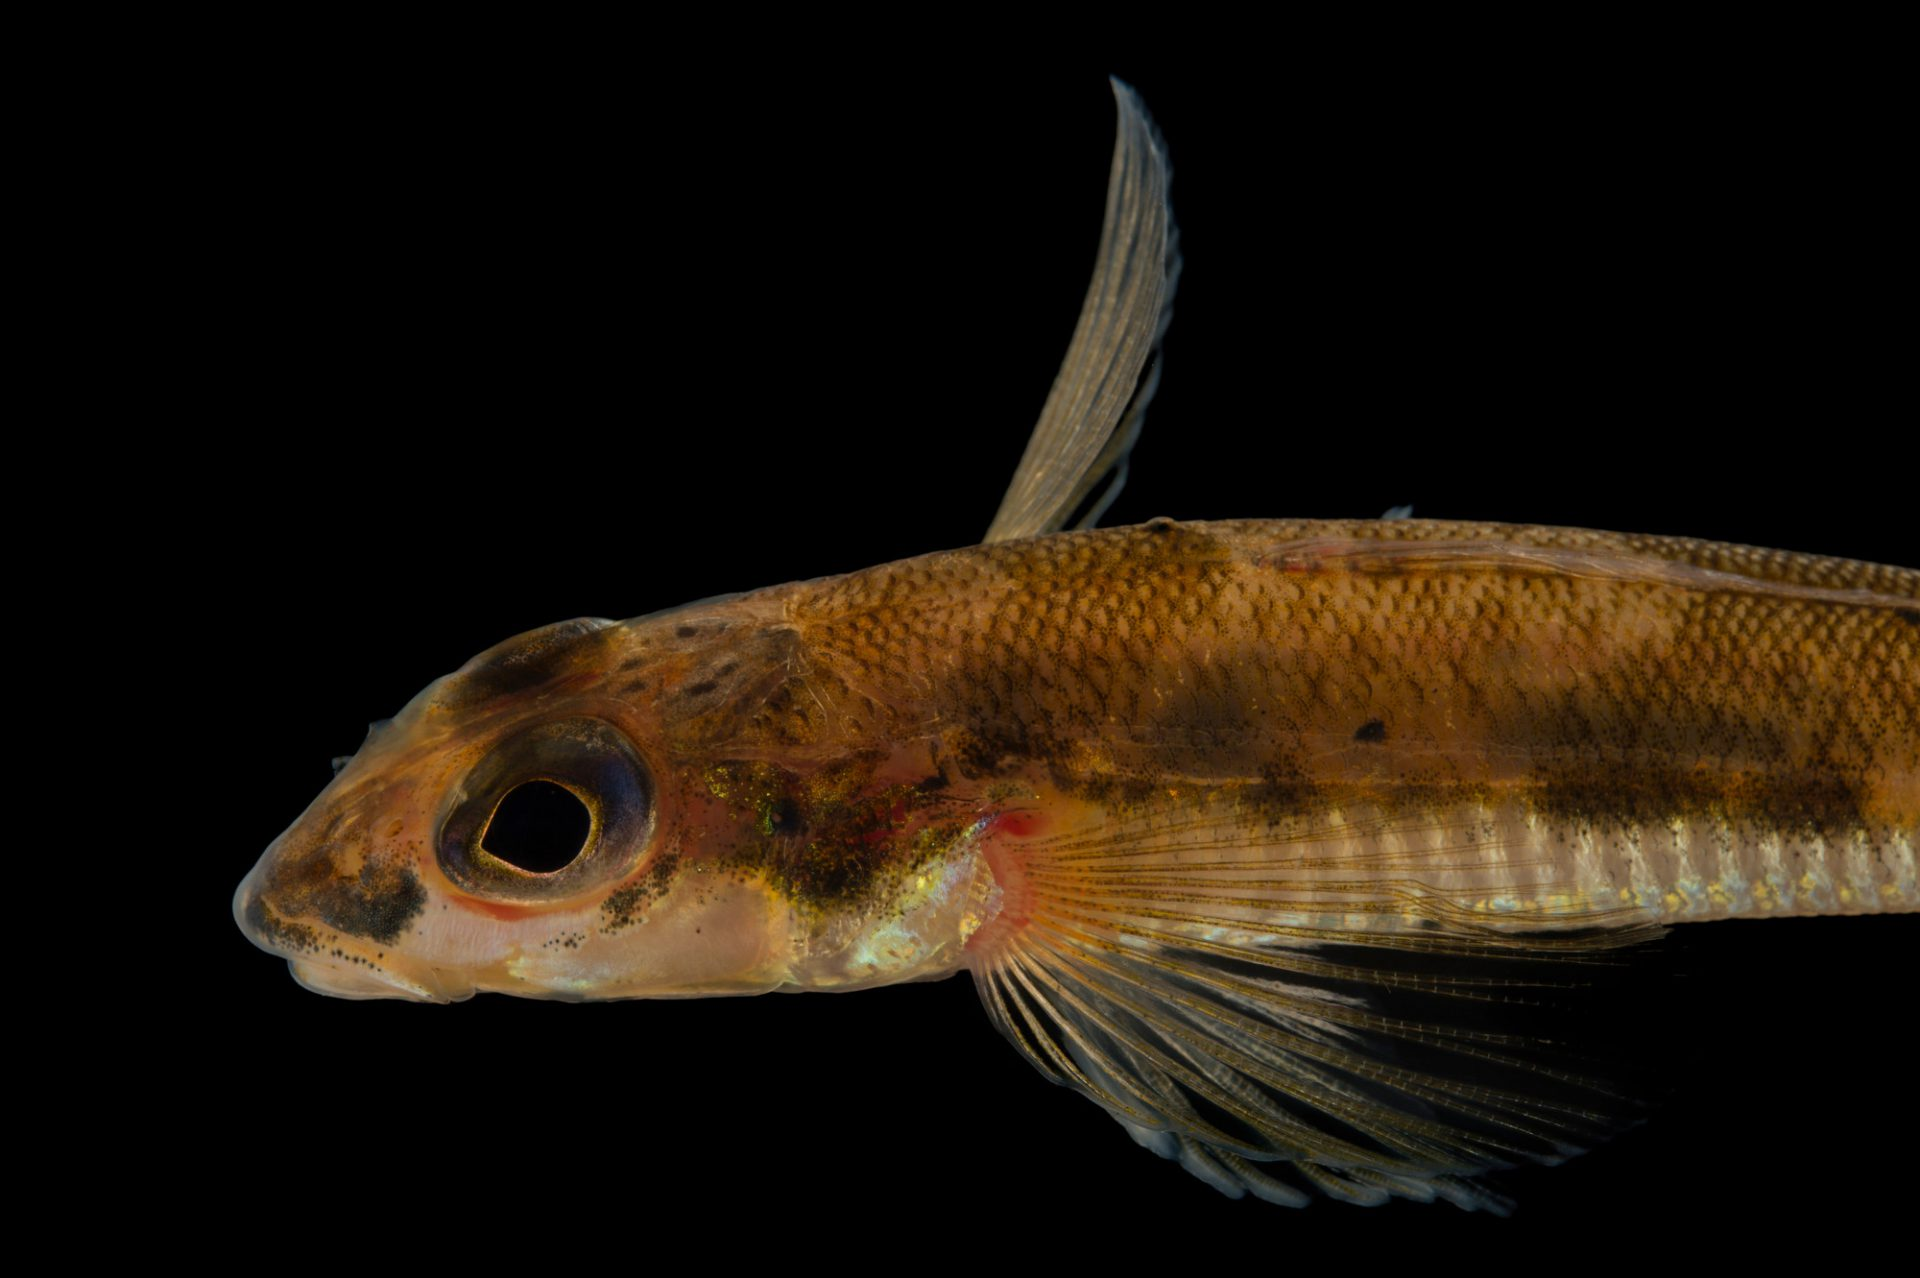 A critically endangered diamond darter (Crystallaria cincotta) at Conservation Fisheries.